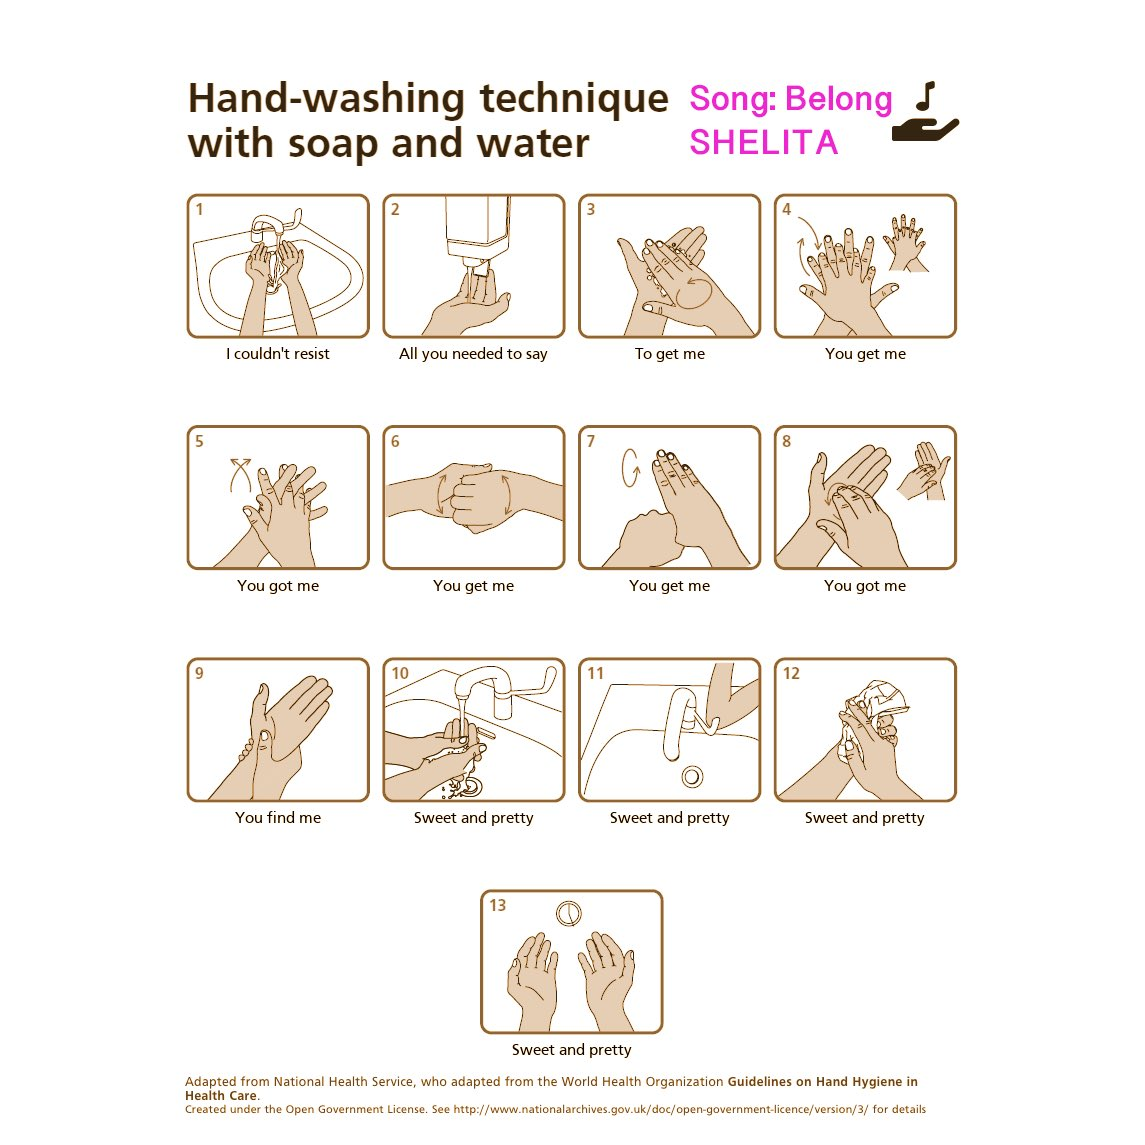 You can now wash your hands to my Belong song ❤️💖 Thank you @WashYourLyrics https://t.co/soTlYJjgT3